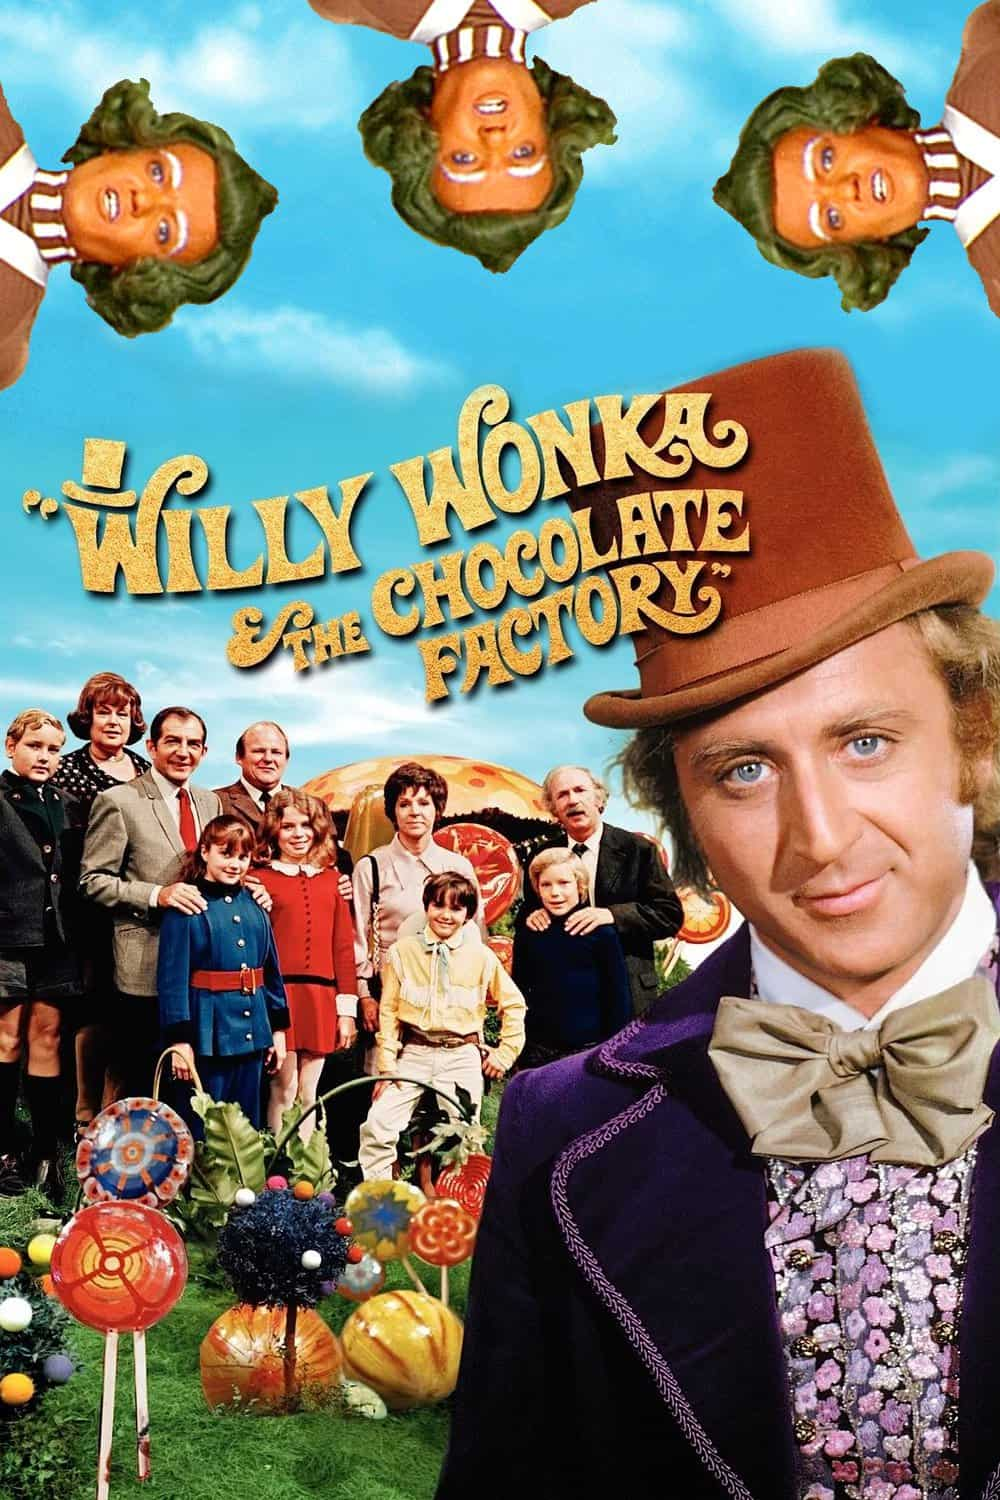 Willy Wonka and the Chocolate Factory, 1971